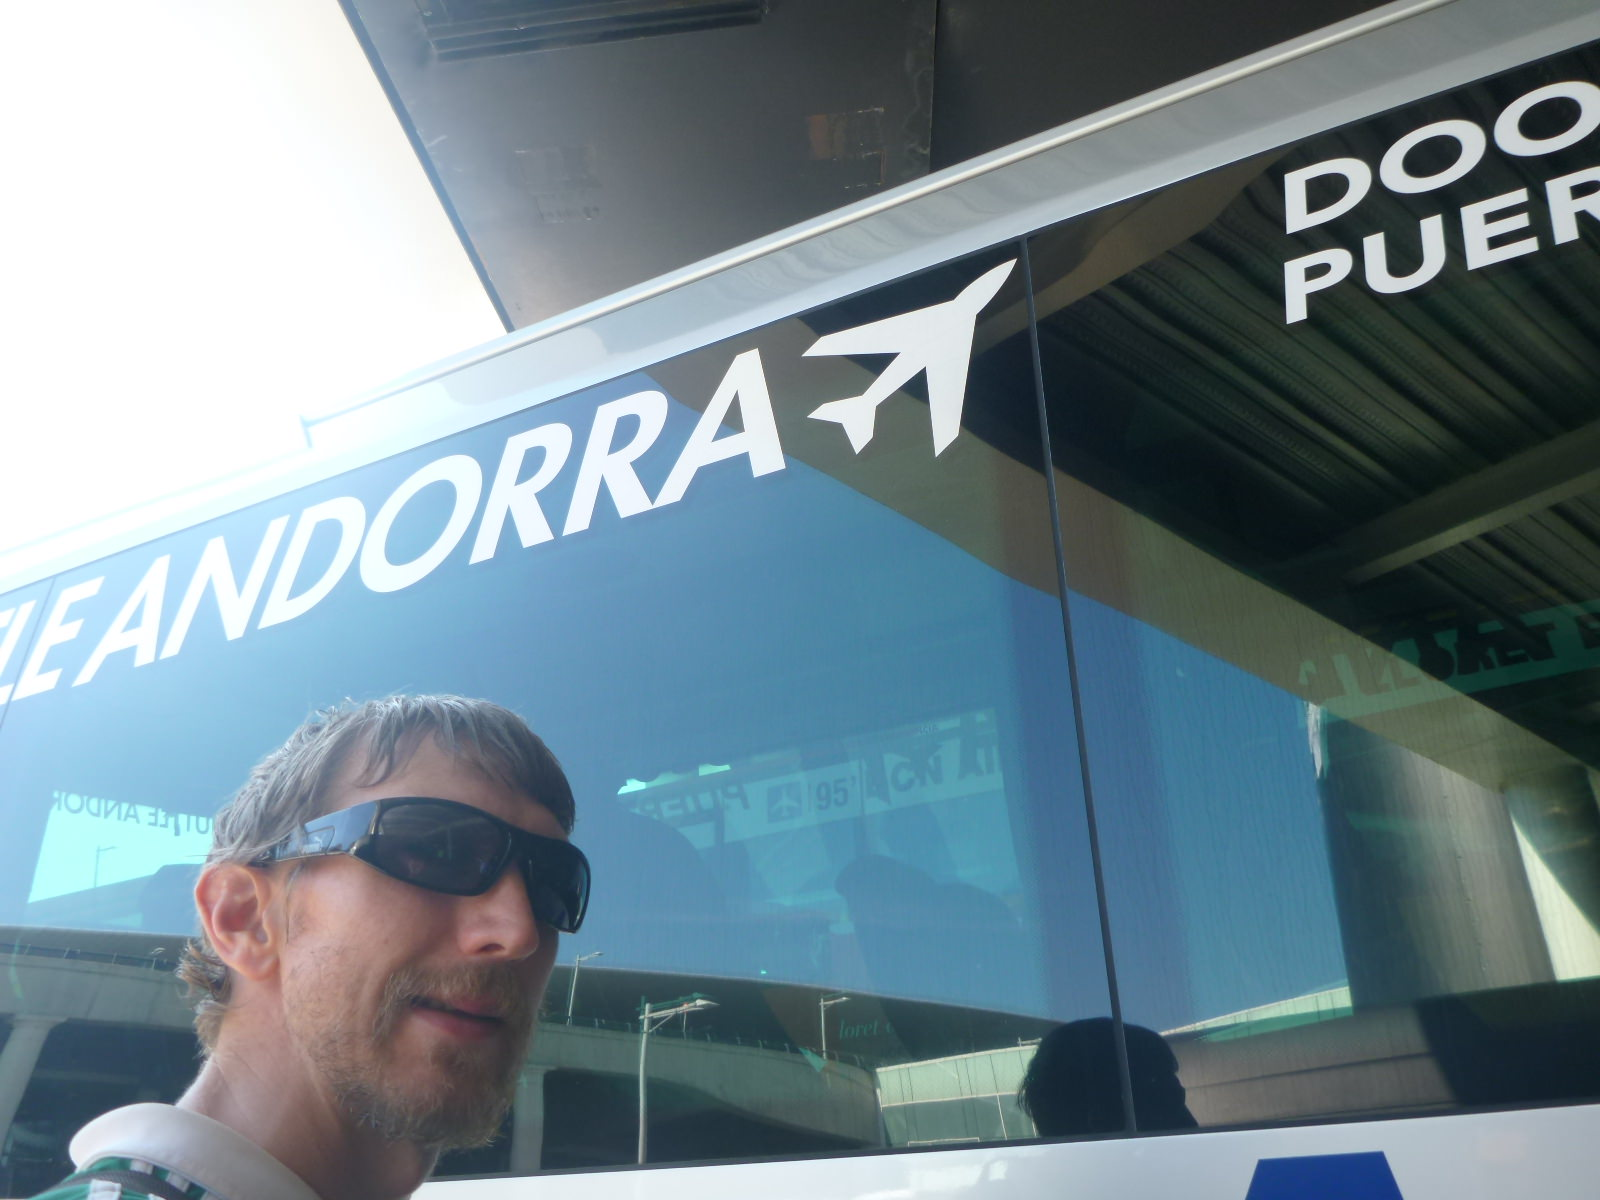 World Borders How To Get From Barcelona Airport Andorra By Bus